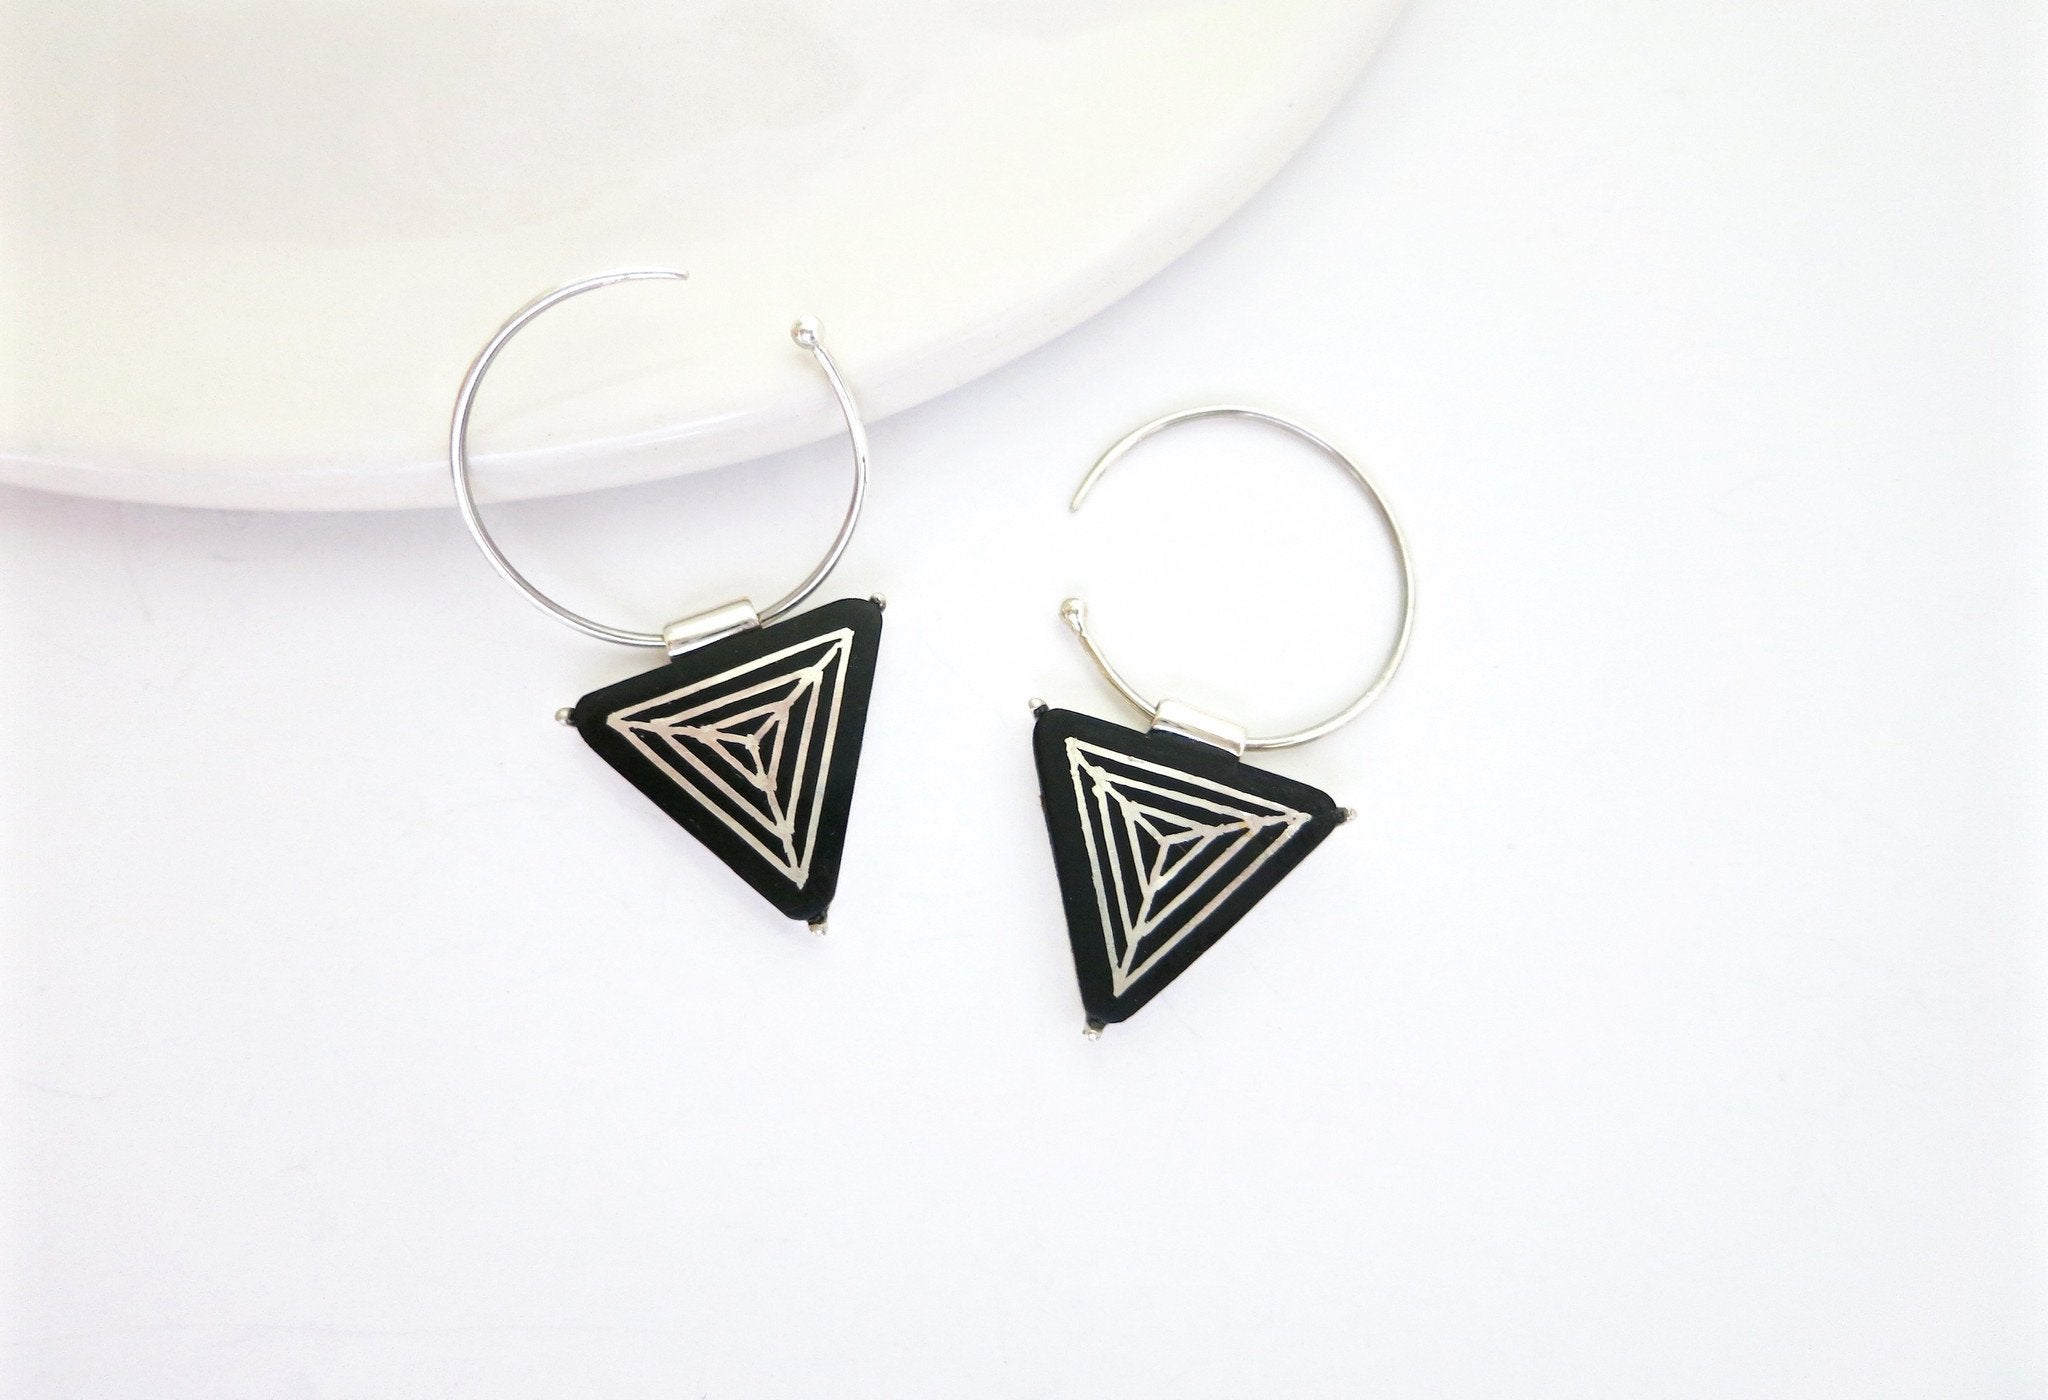 Chic triangular Bidri small open hoops - Craft Stories Handmade, contemporary, personal and home accessories. Designed in California. Handcrafted in India. Traditional craftsmanship meets modern aesthetics. Sustainable design ethos, fair trade, conscious, artisanal jewelry and home decor. Objects with a story. Unique and on-trend.